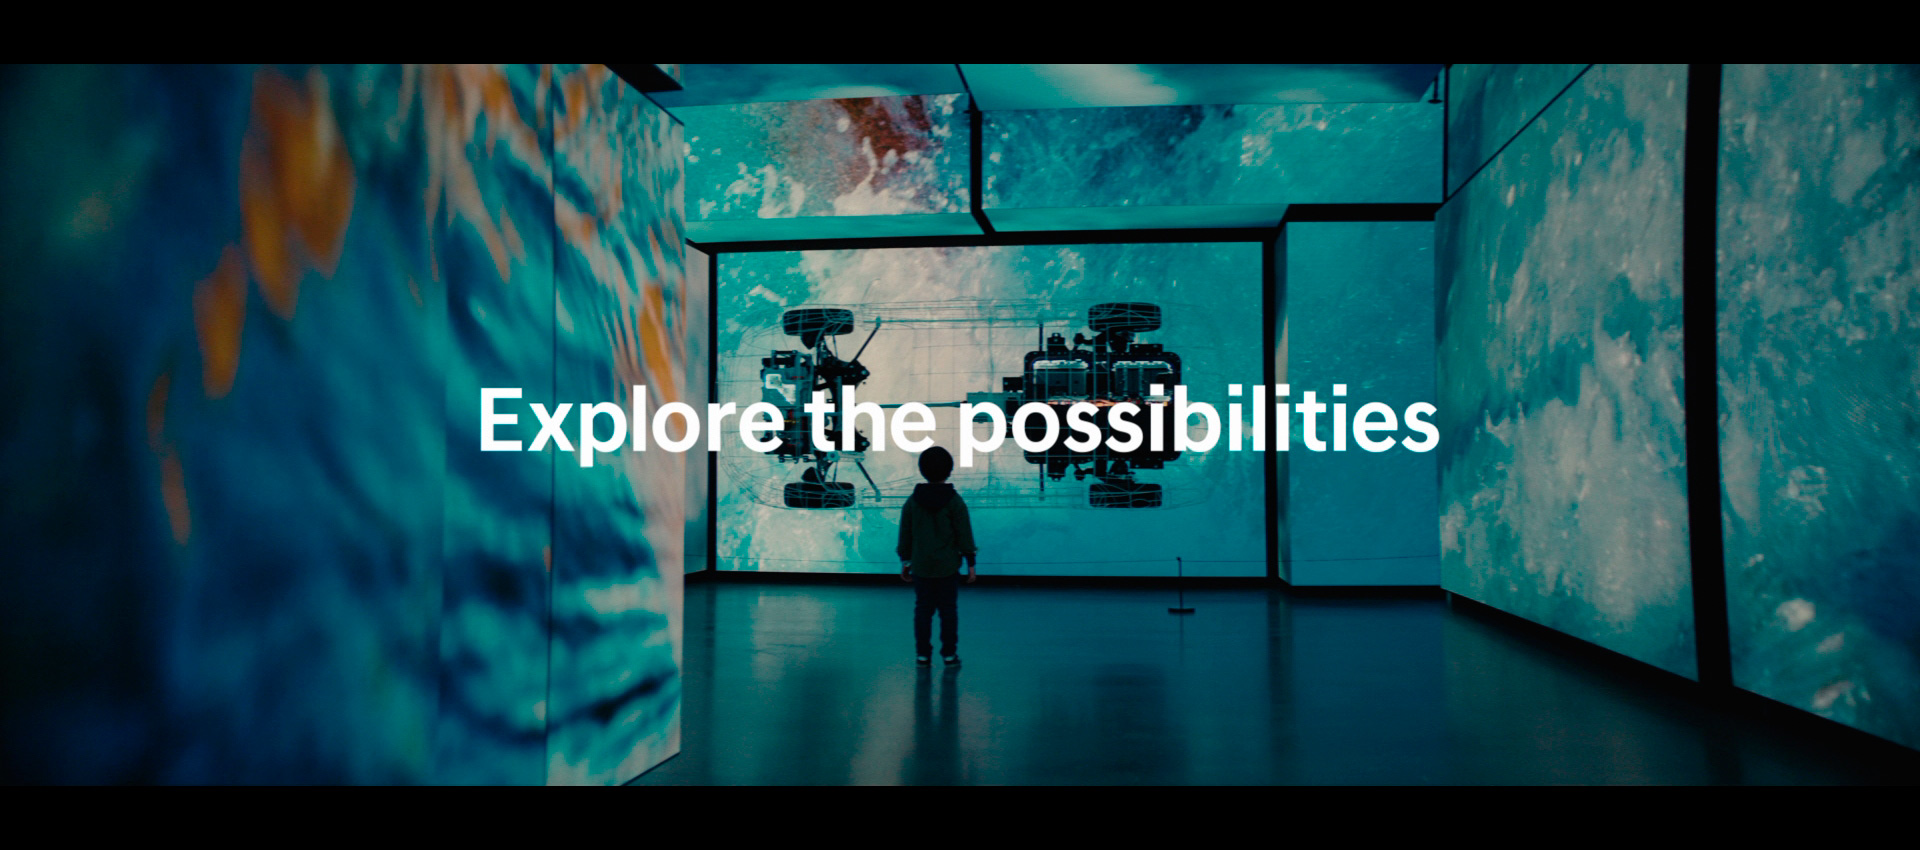 Hyundai Motor lanza la campaña Explore the Possibilities